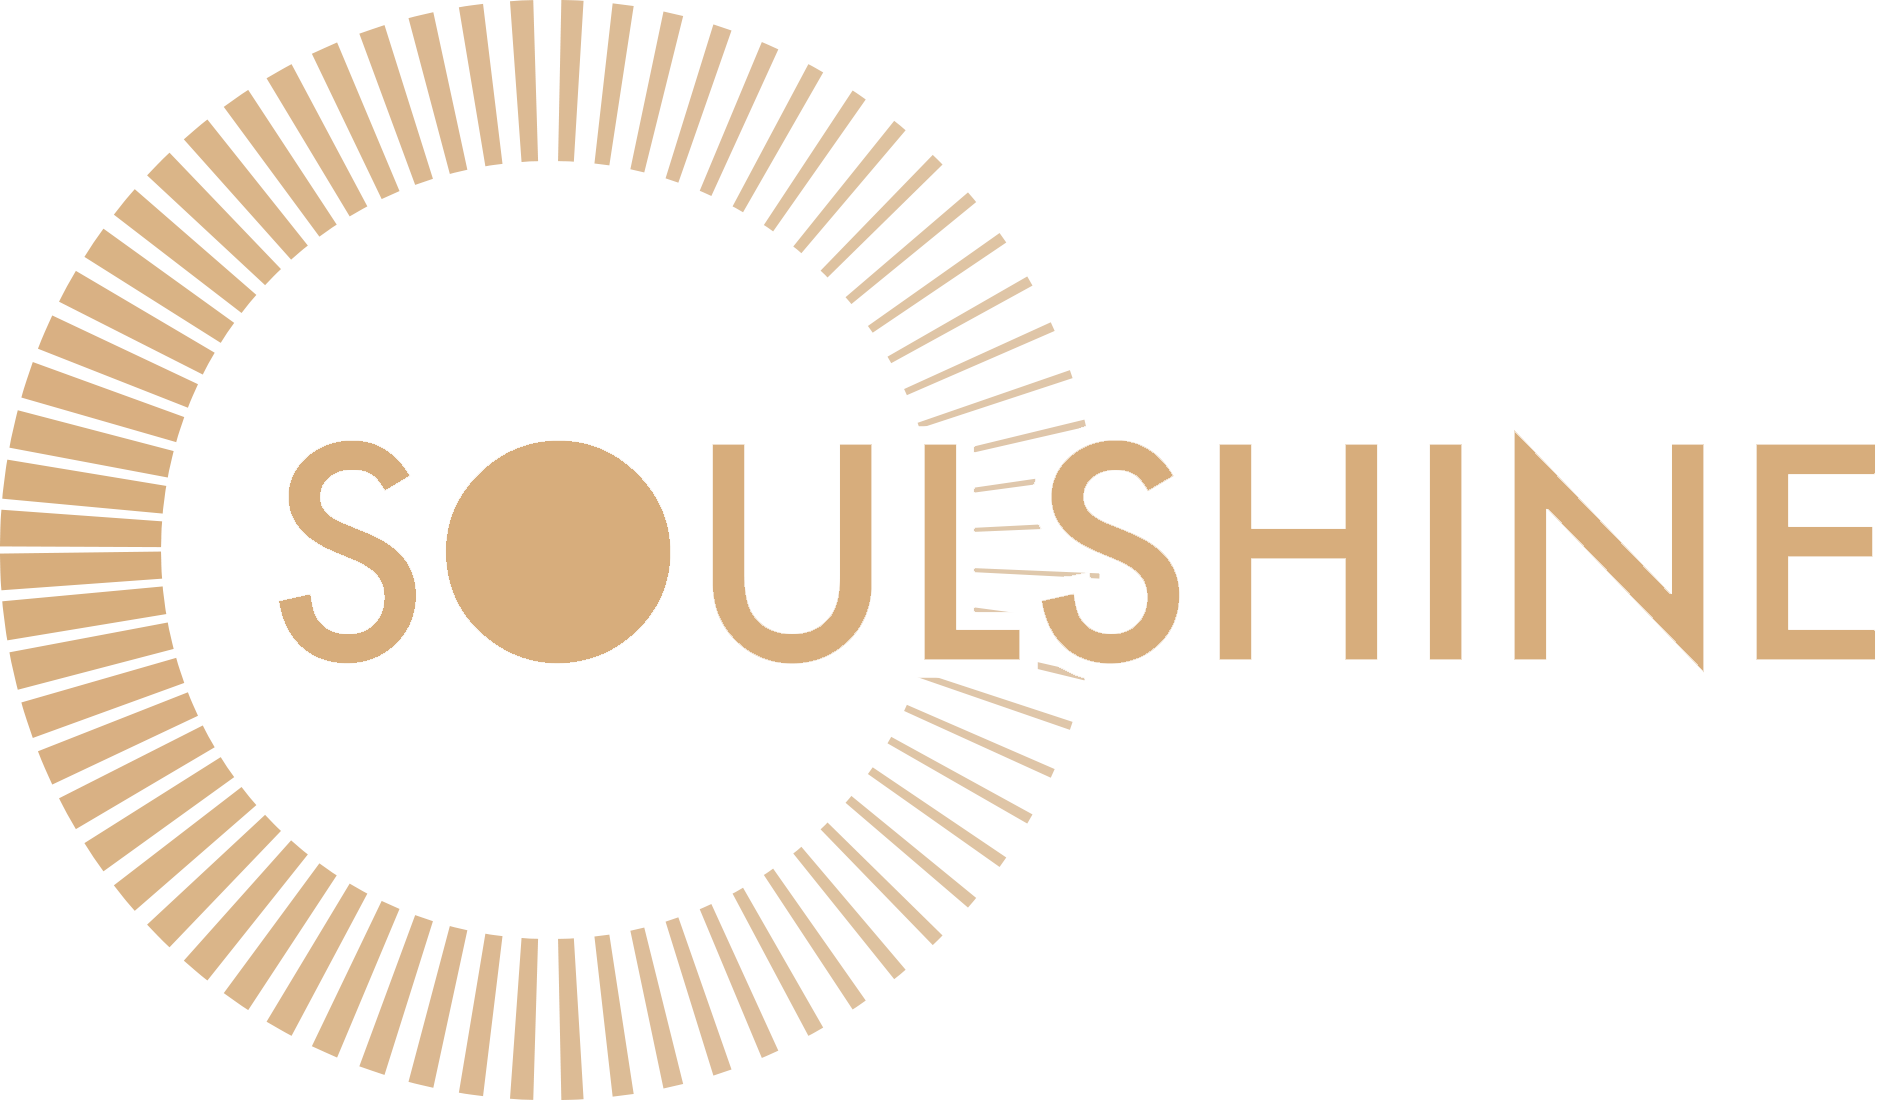 Soulshine Sounds